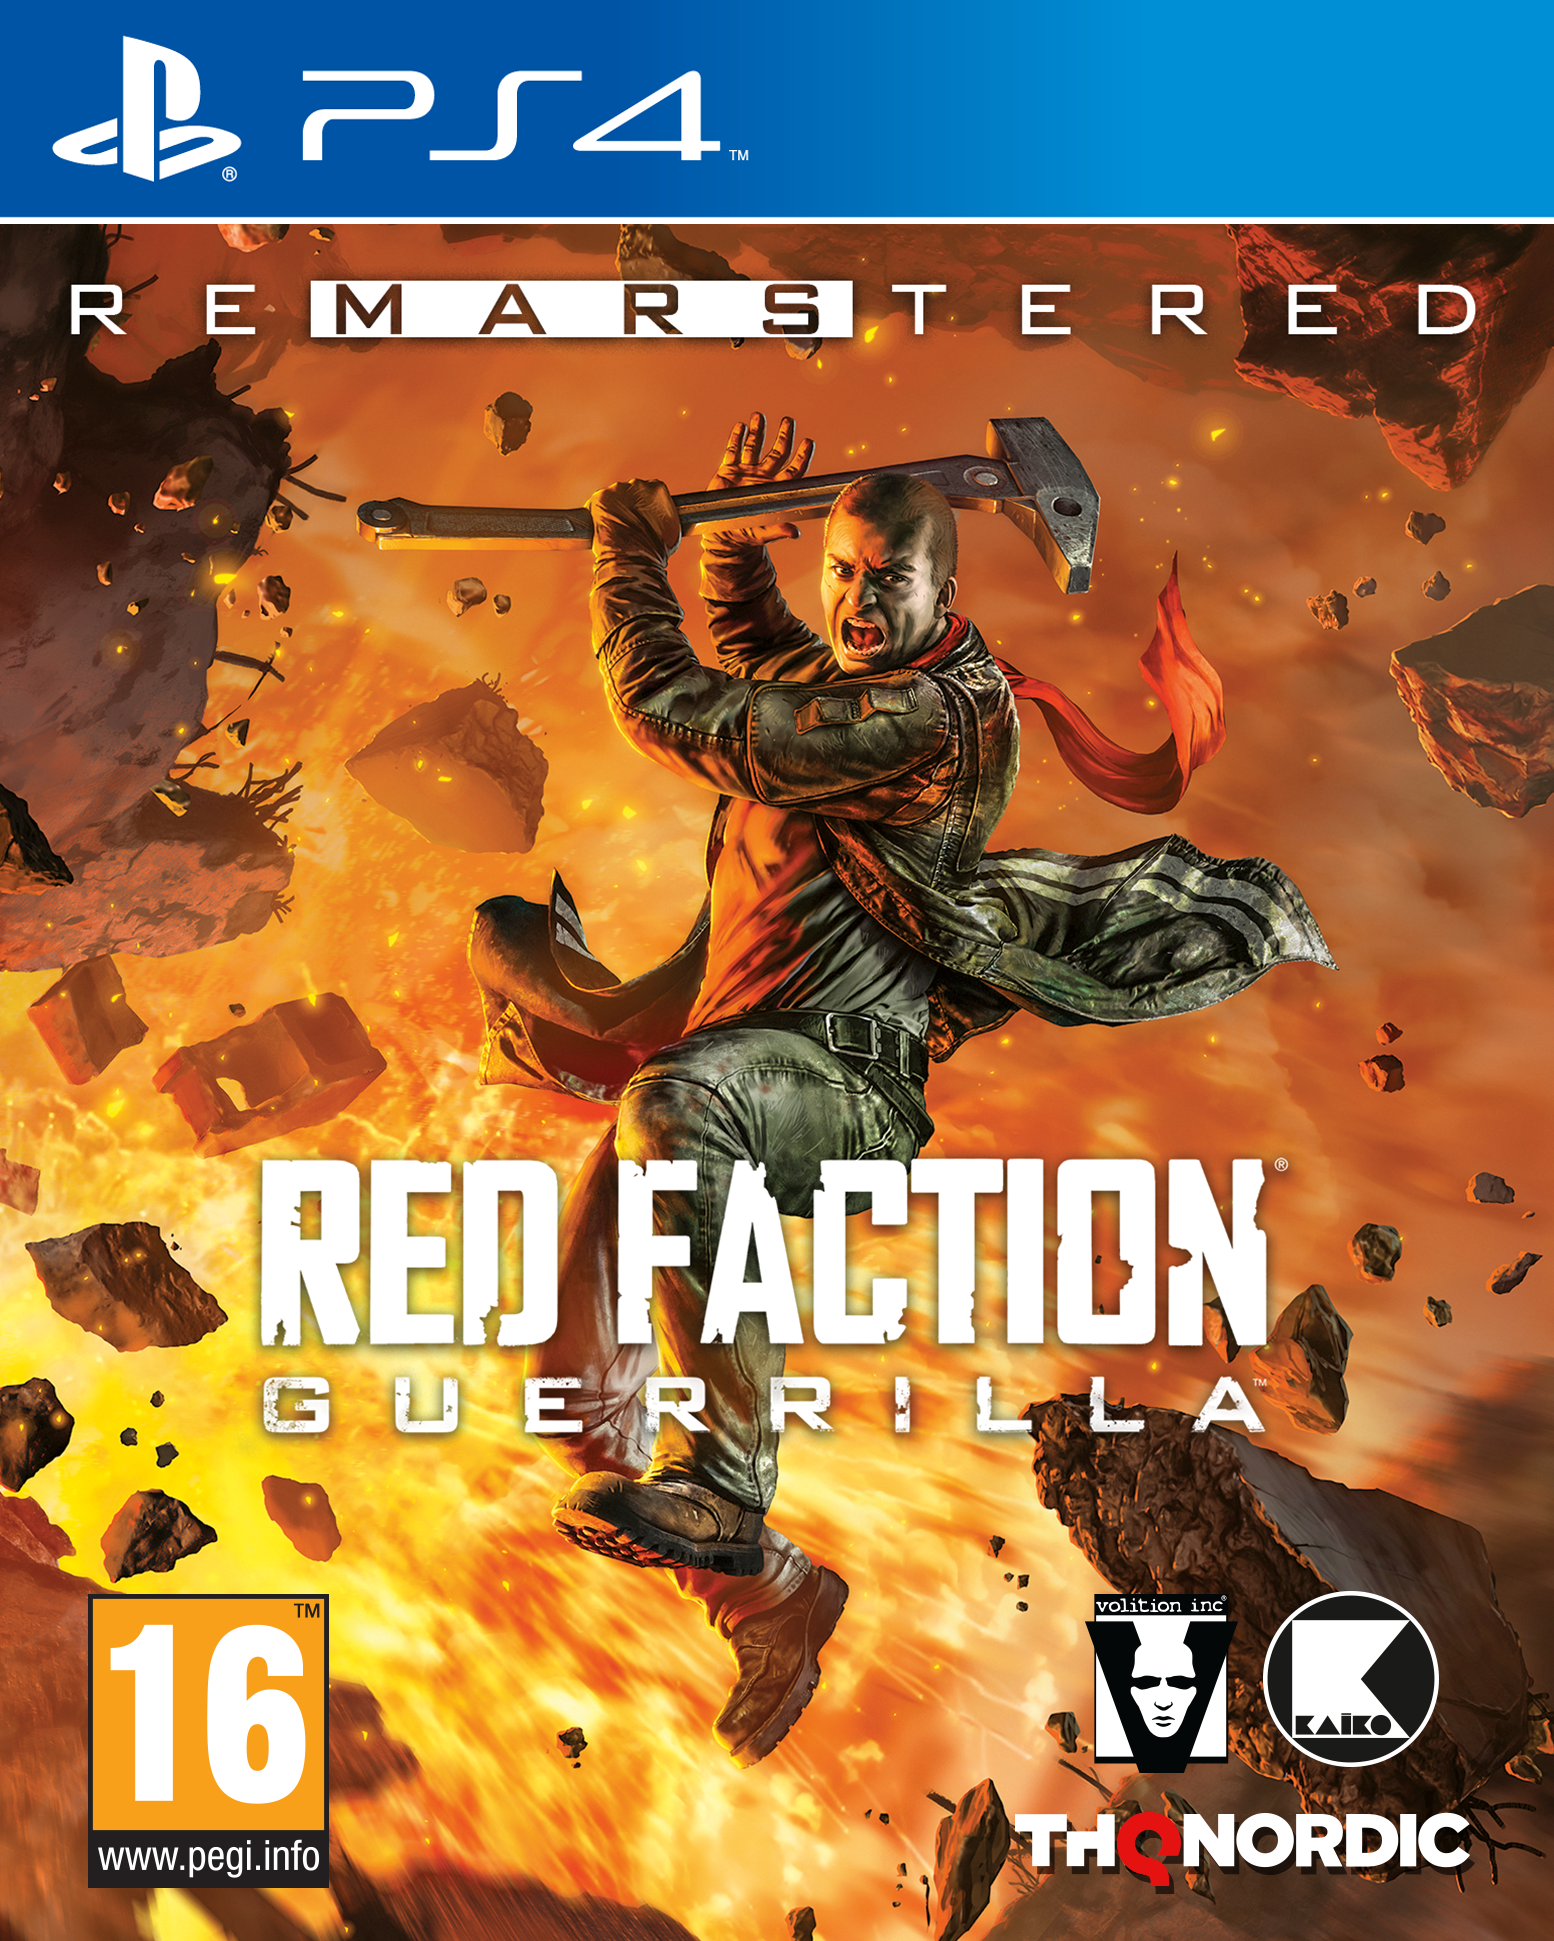 Red Faction: Guerrilla Remastered